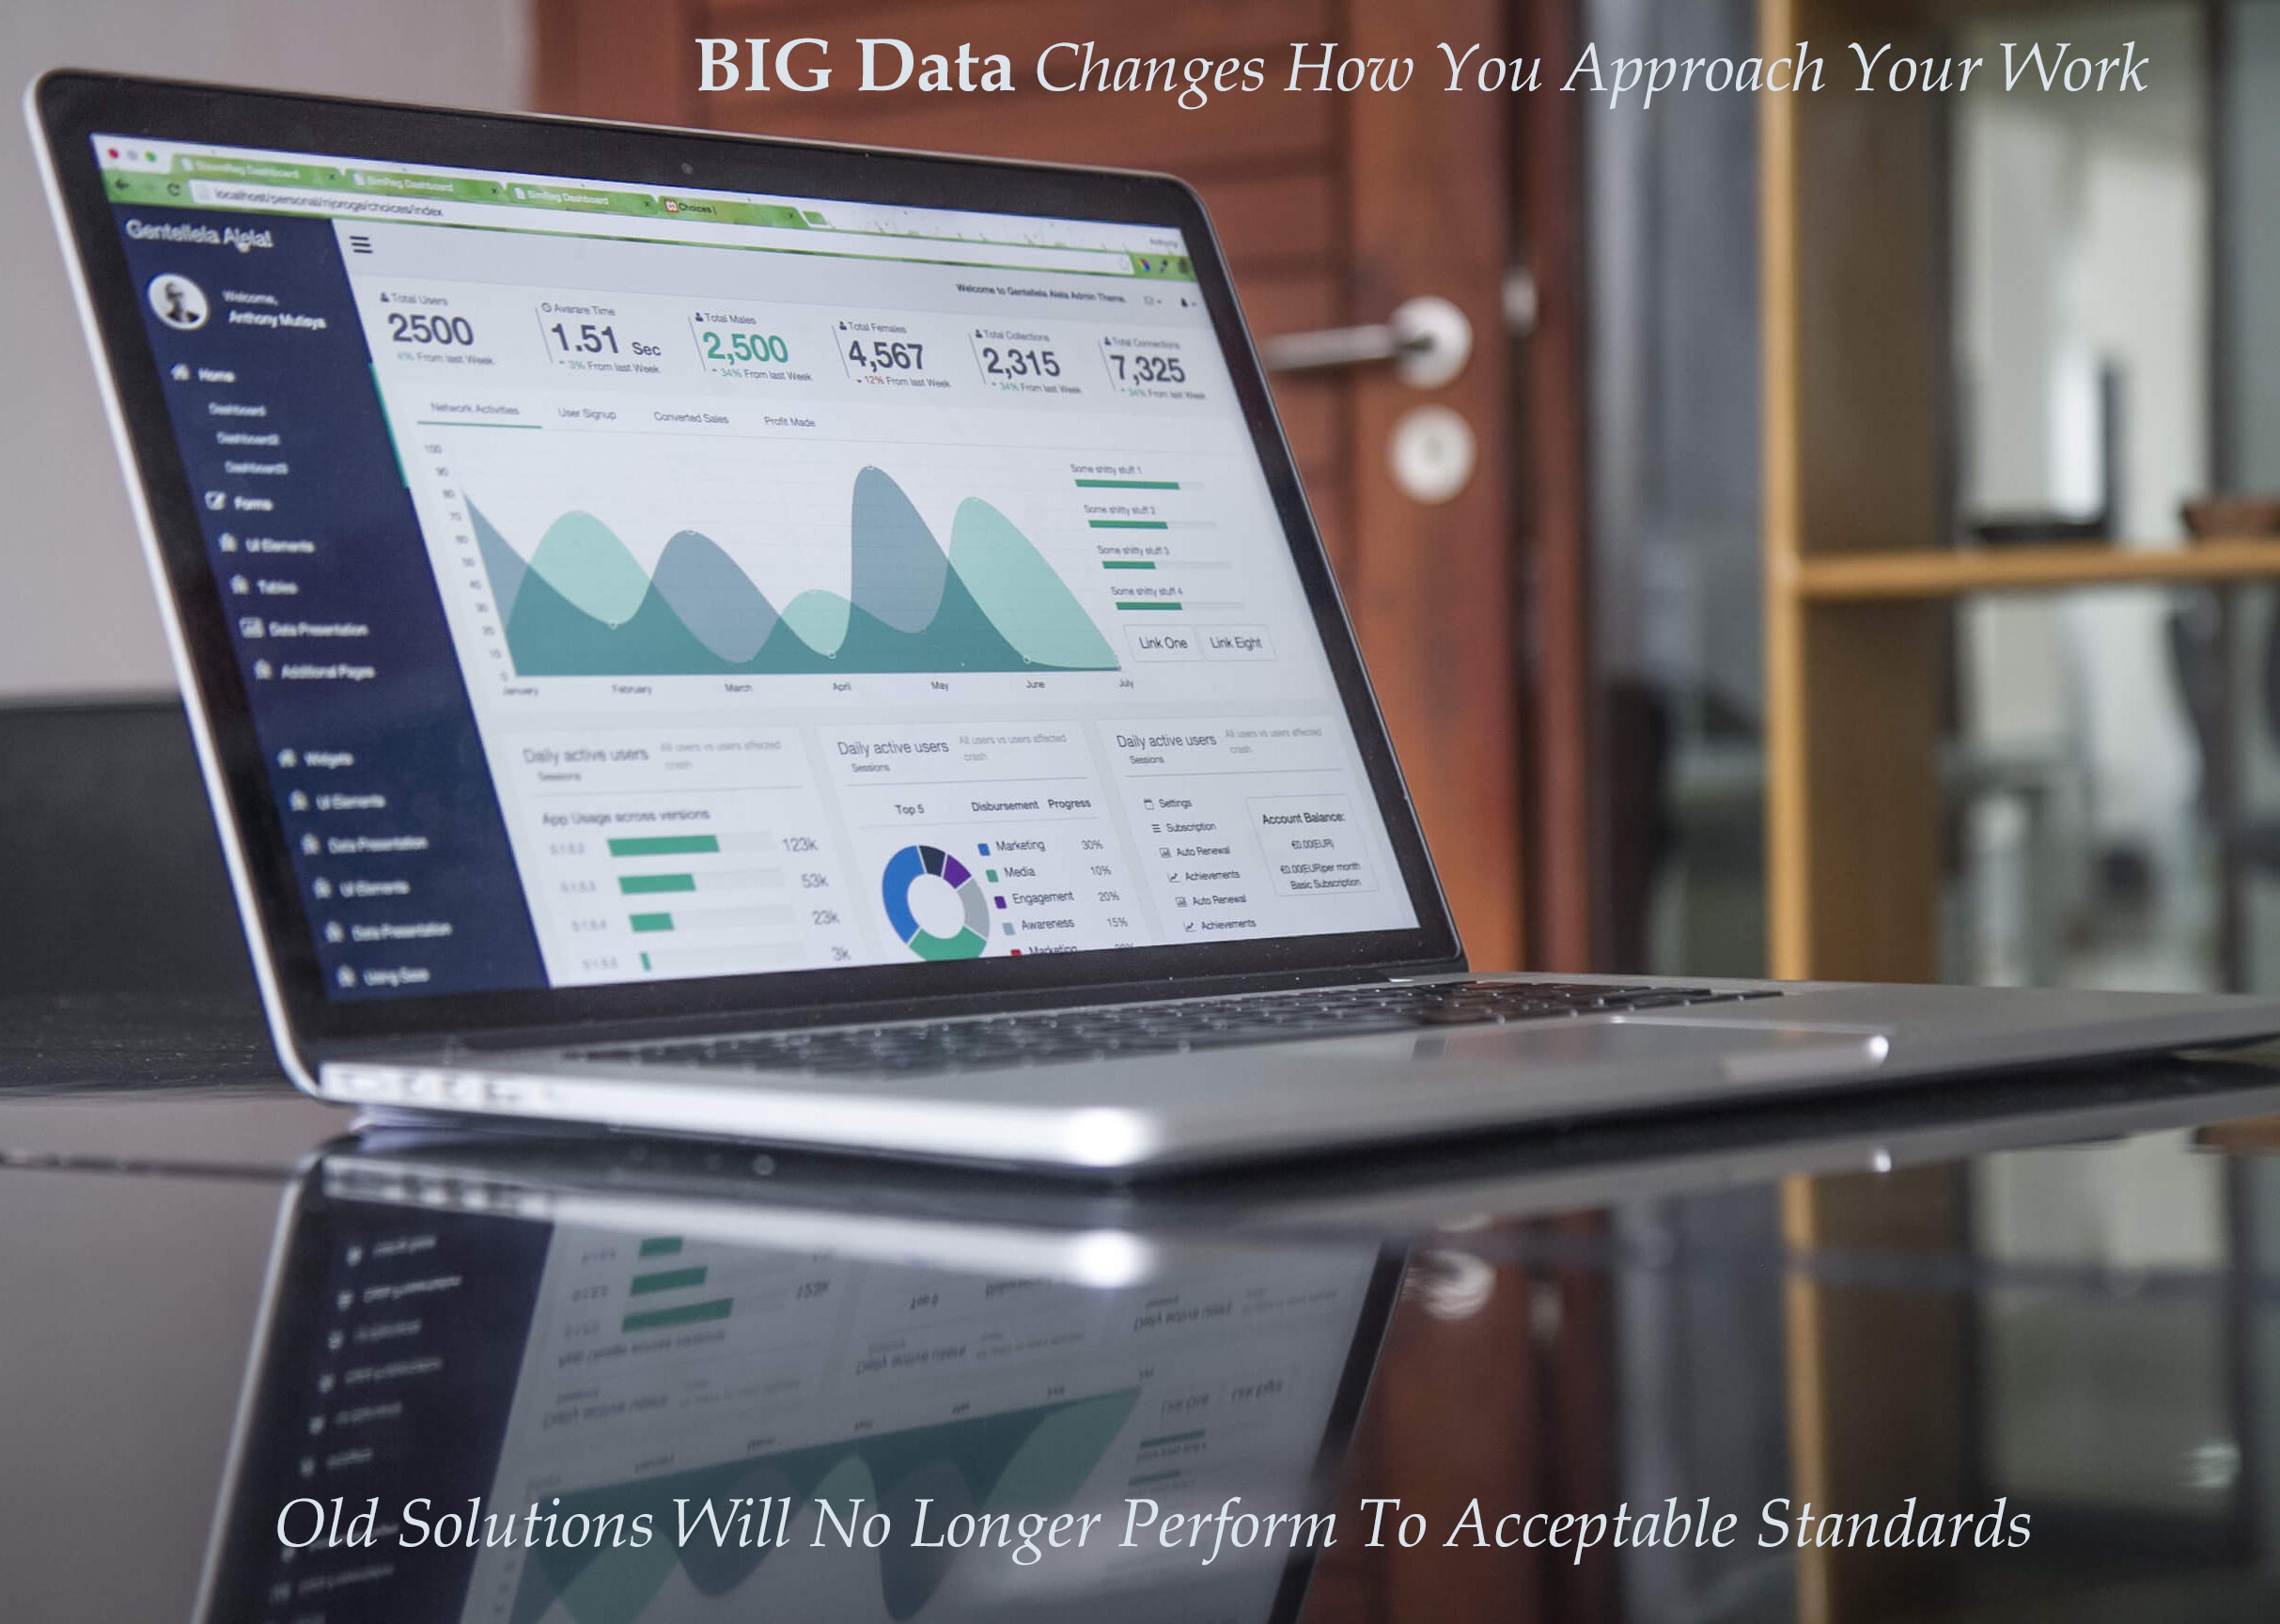 BIG Data adds to the challenge of a proper solution